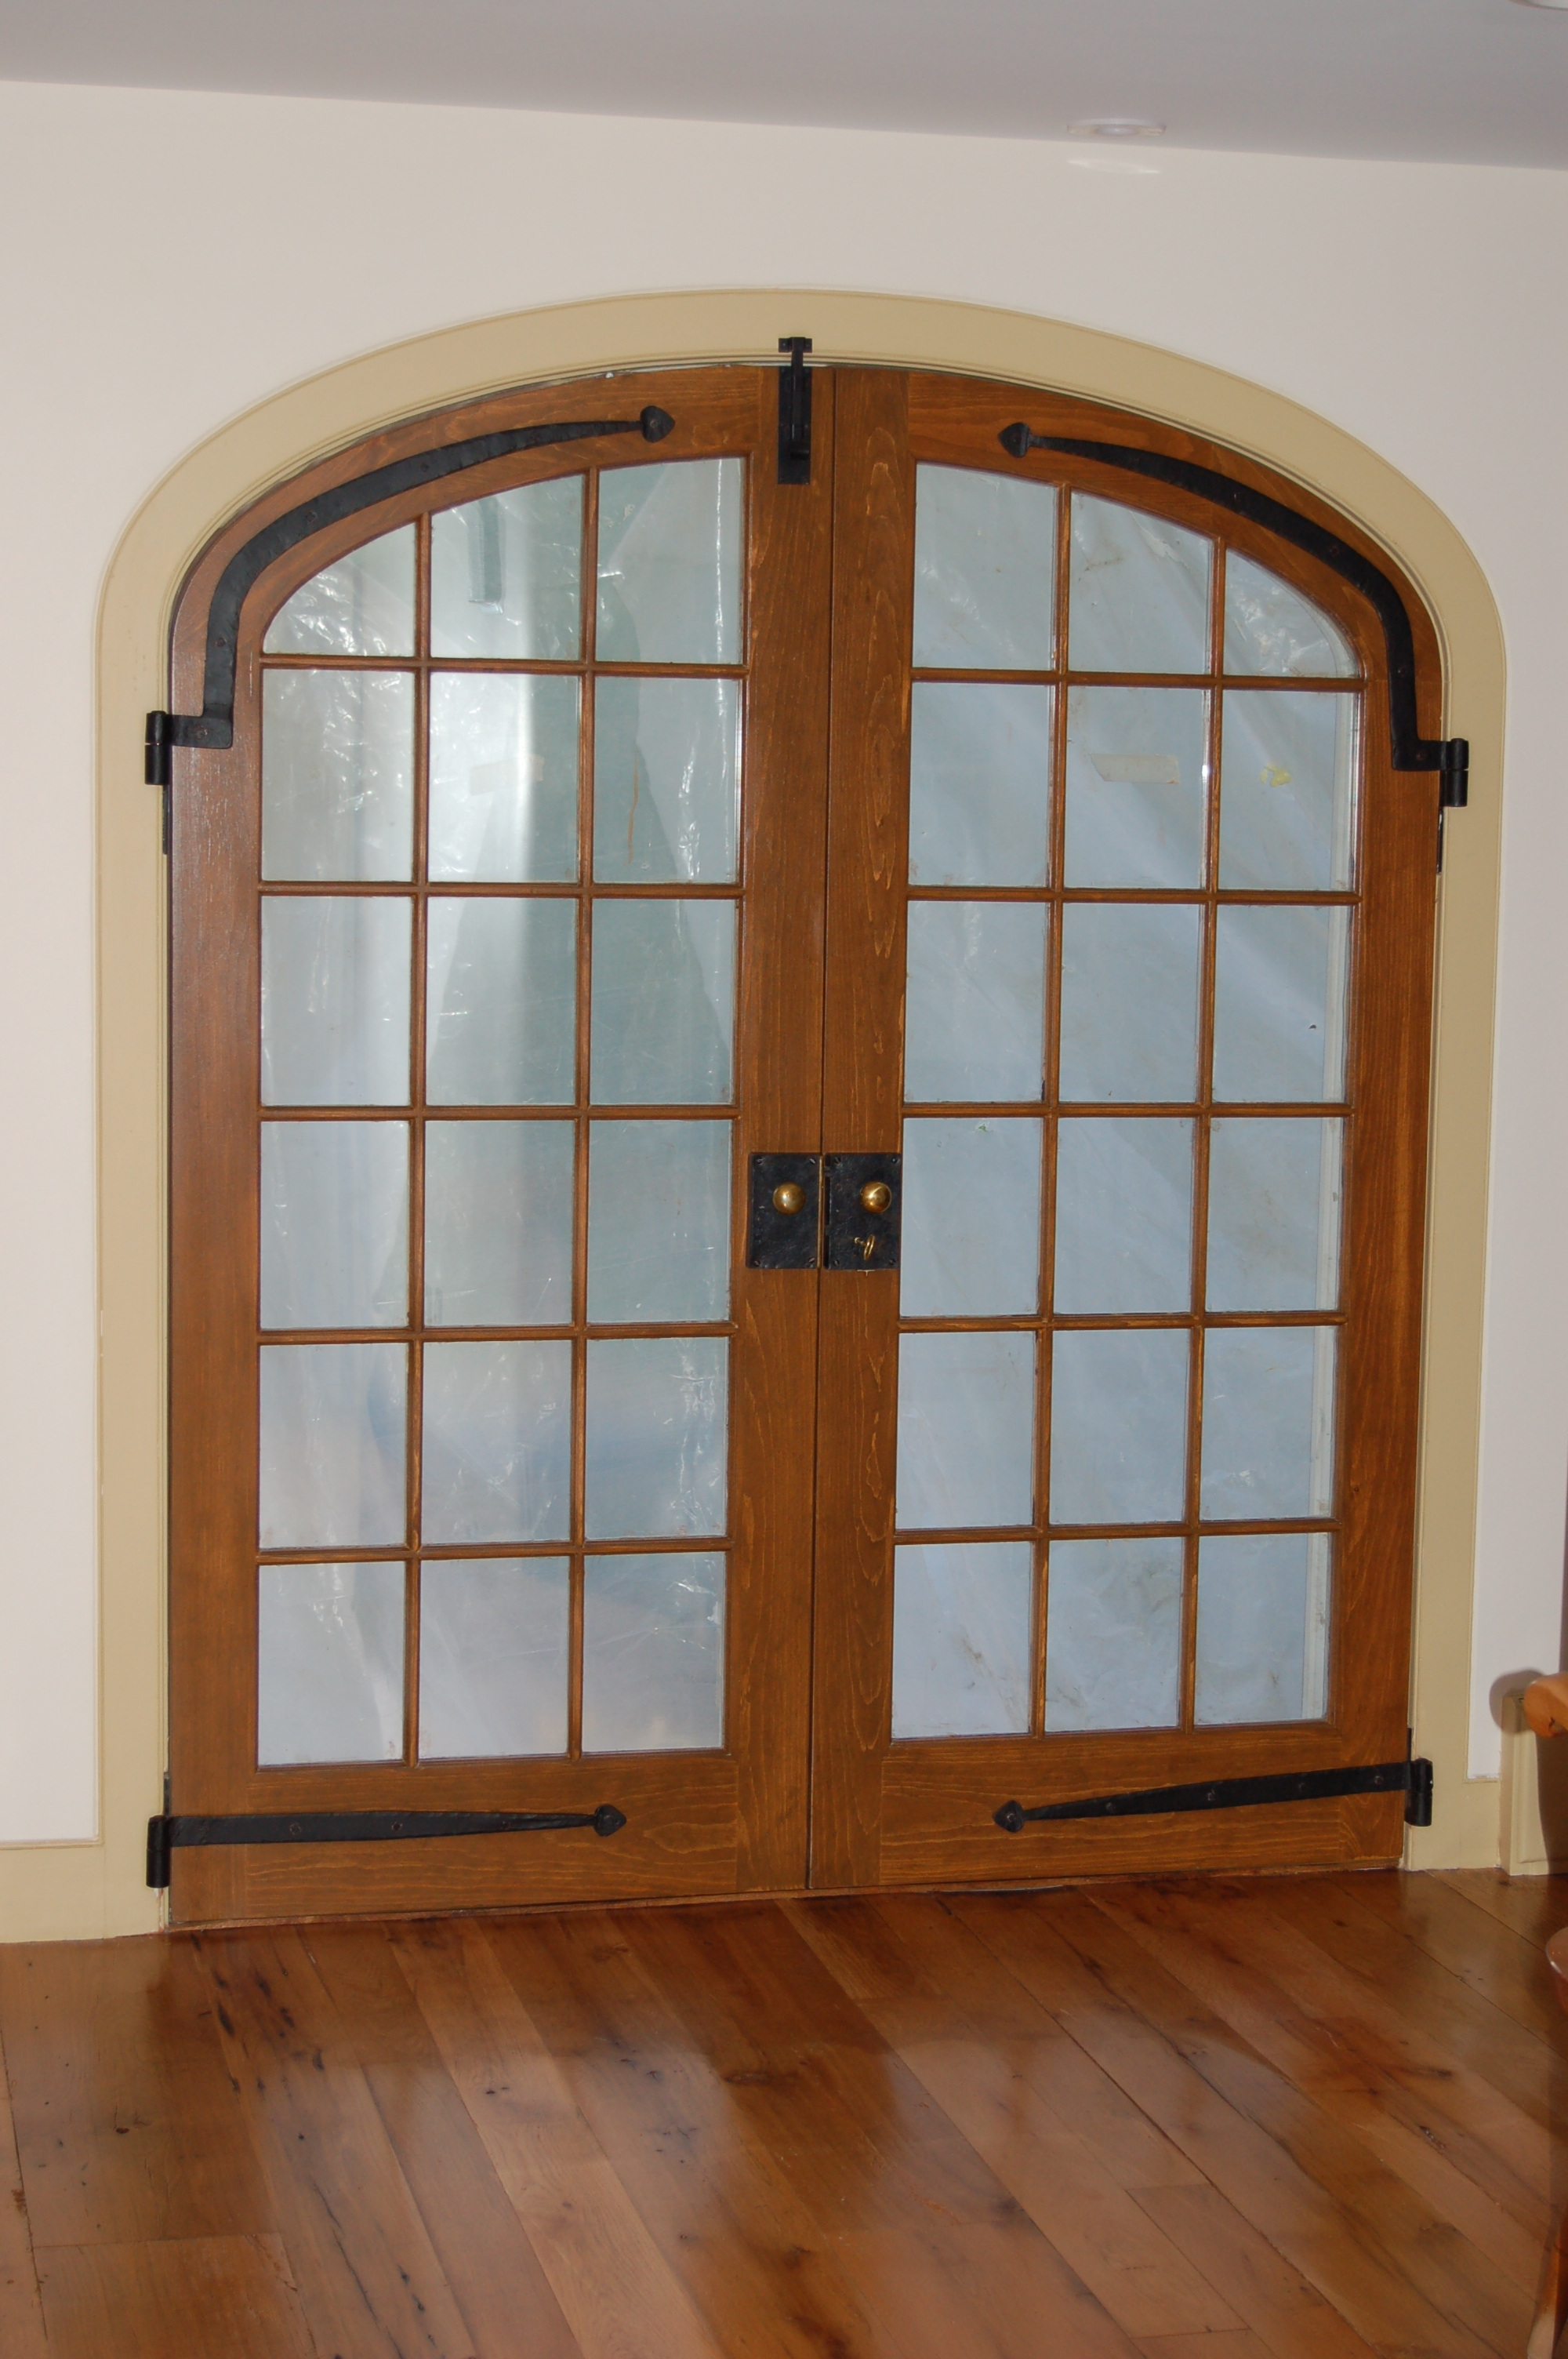 Round top front door window inserts - Elliptical Double Arch Top Exterior Door Unit Double Pane Insulated Glass Simulated Mullions Project In Pa